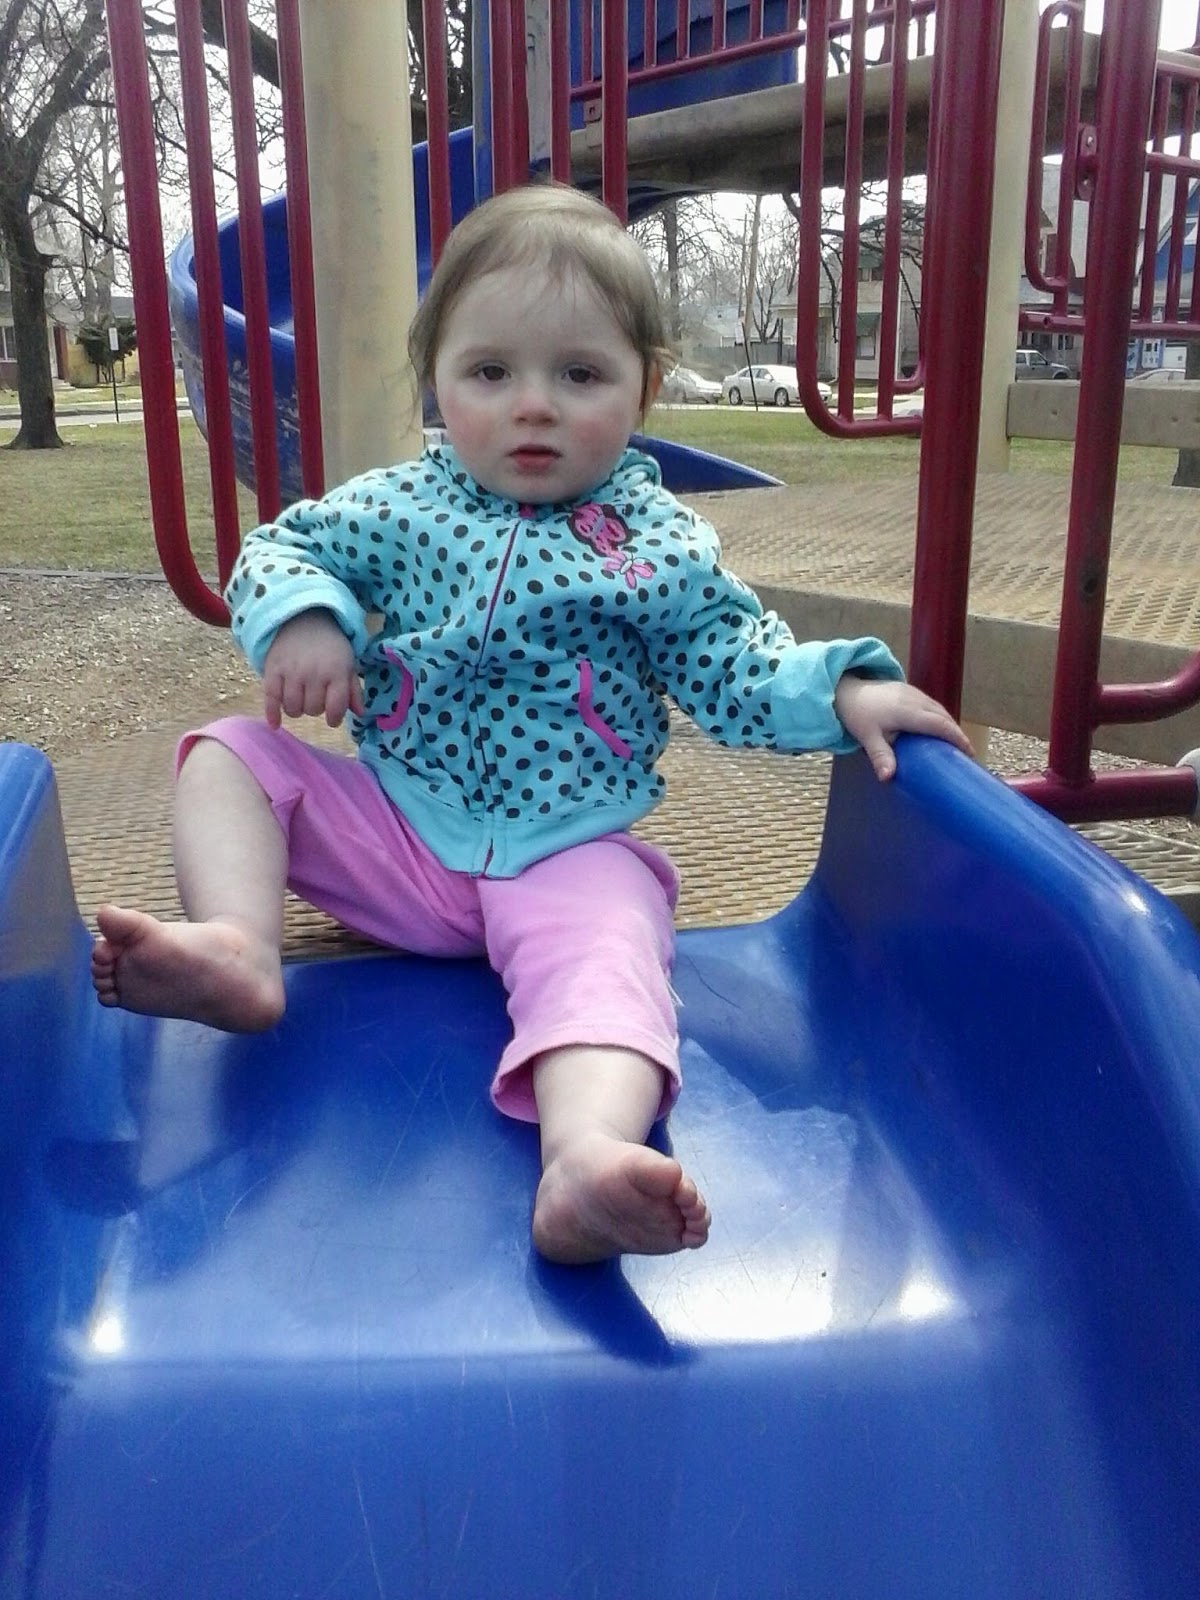 Elaina Steinfurth: Missing toddler from Toledo Found